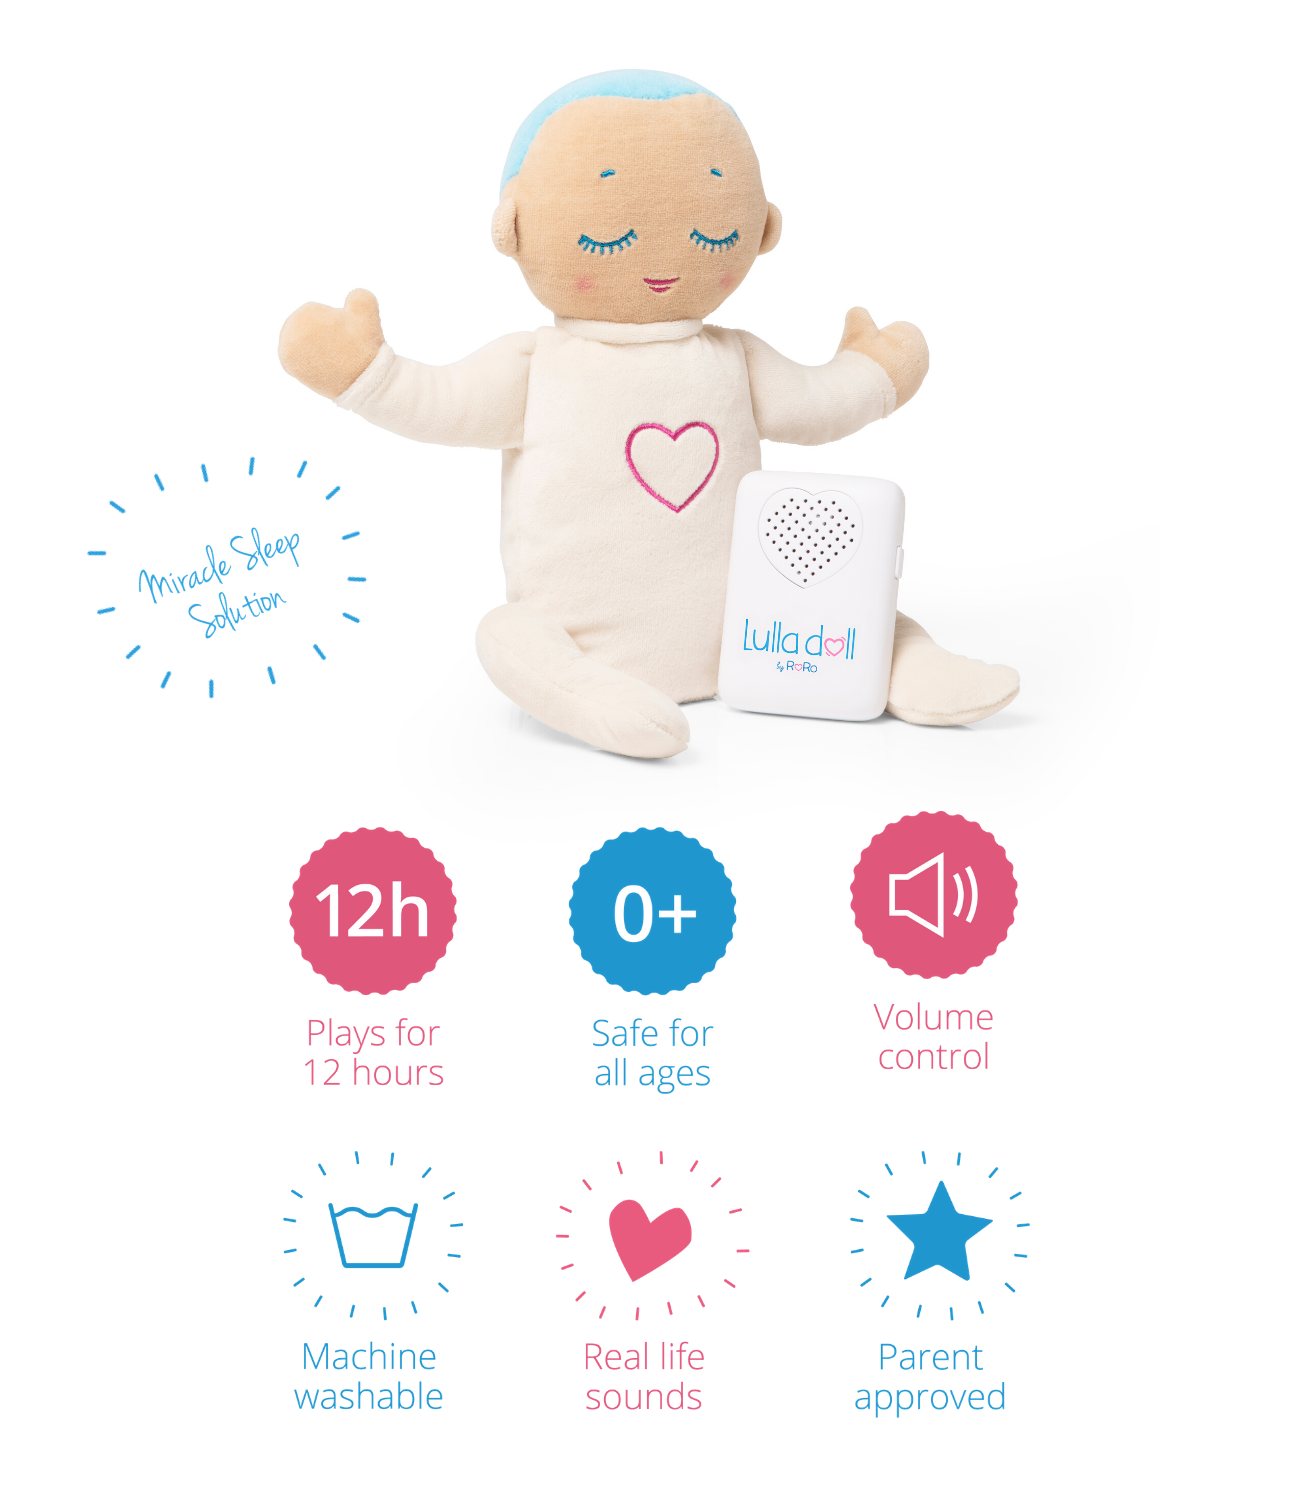 What is the best baby sleep aid